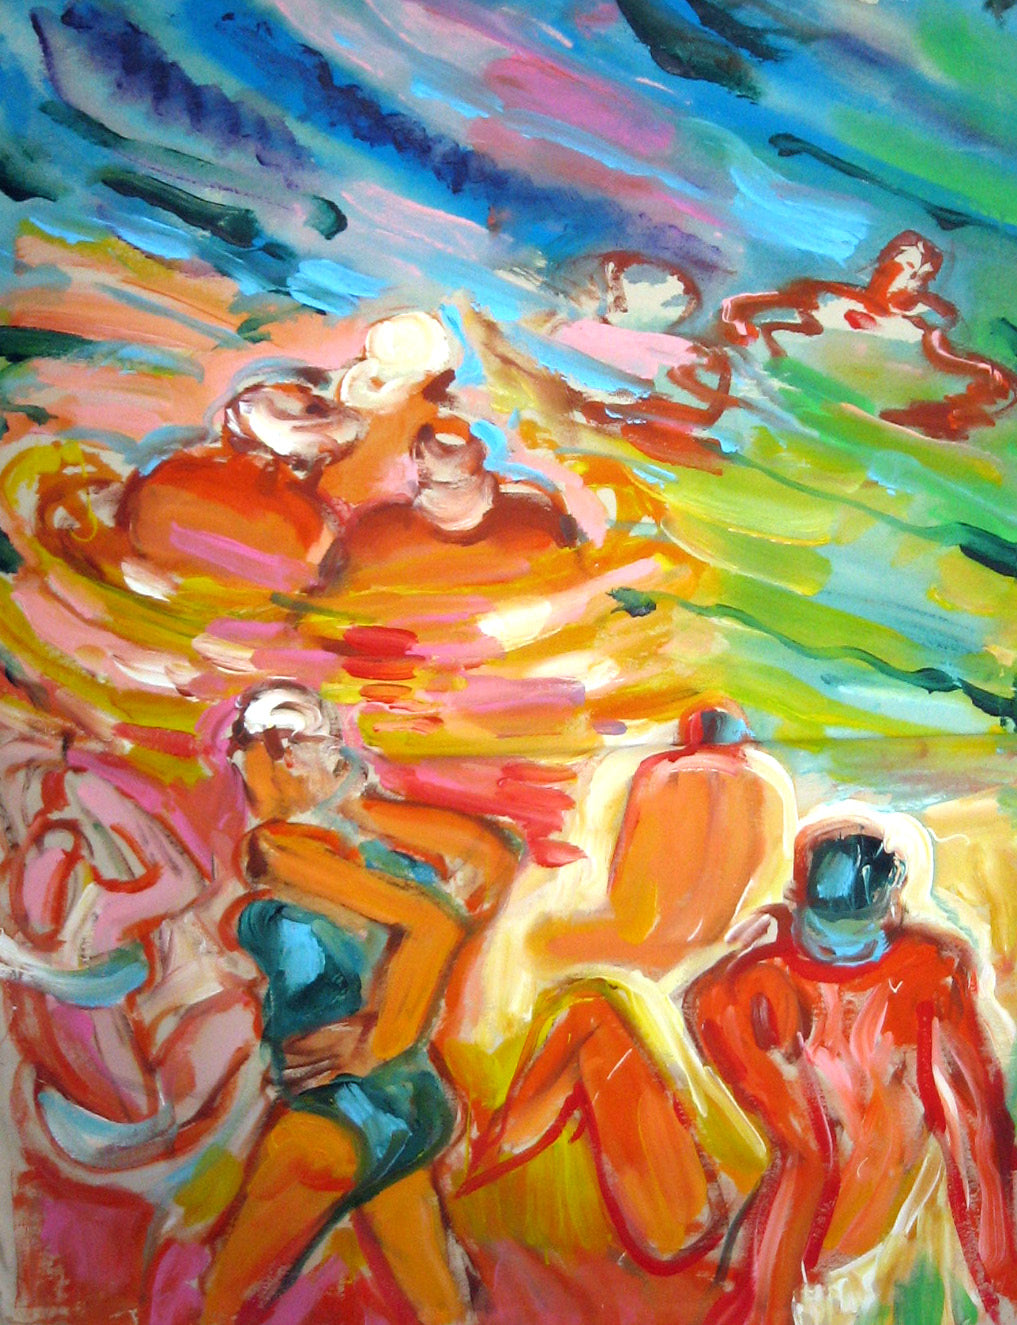 Colourful Bathers and Sea Scene